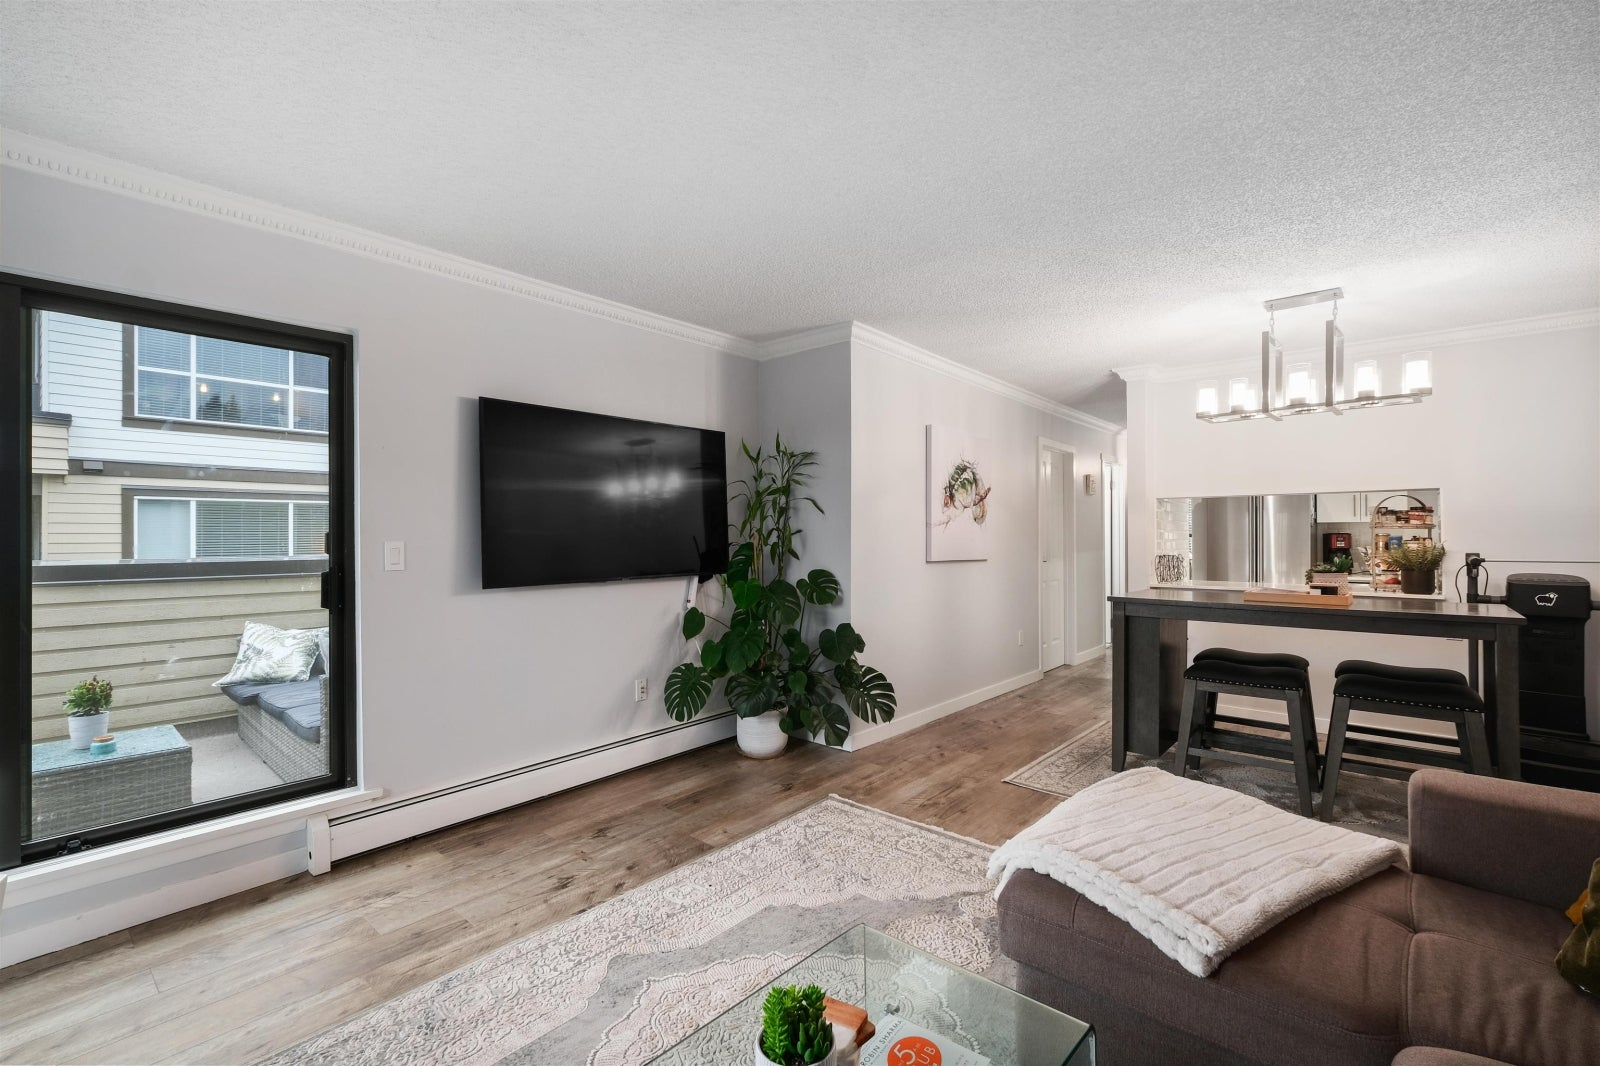 304 3275 MOUNTAIN HIGHWAY - Lynn Valley Apartment/Condo for sale, 2 Bedrooms (R2618420) #5